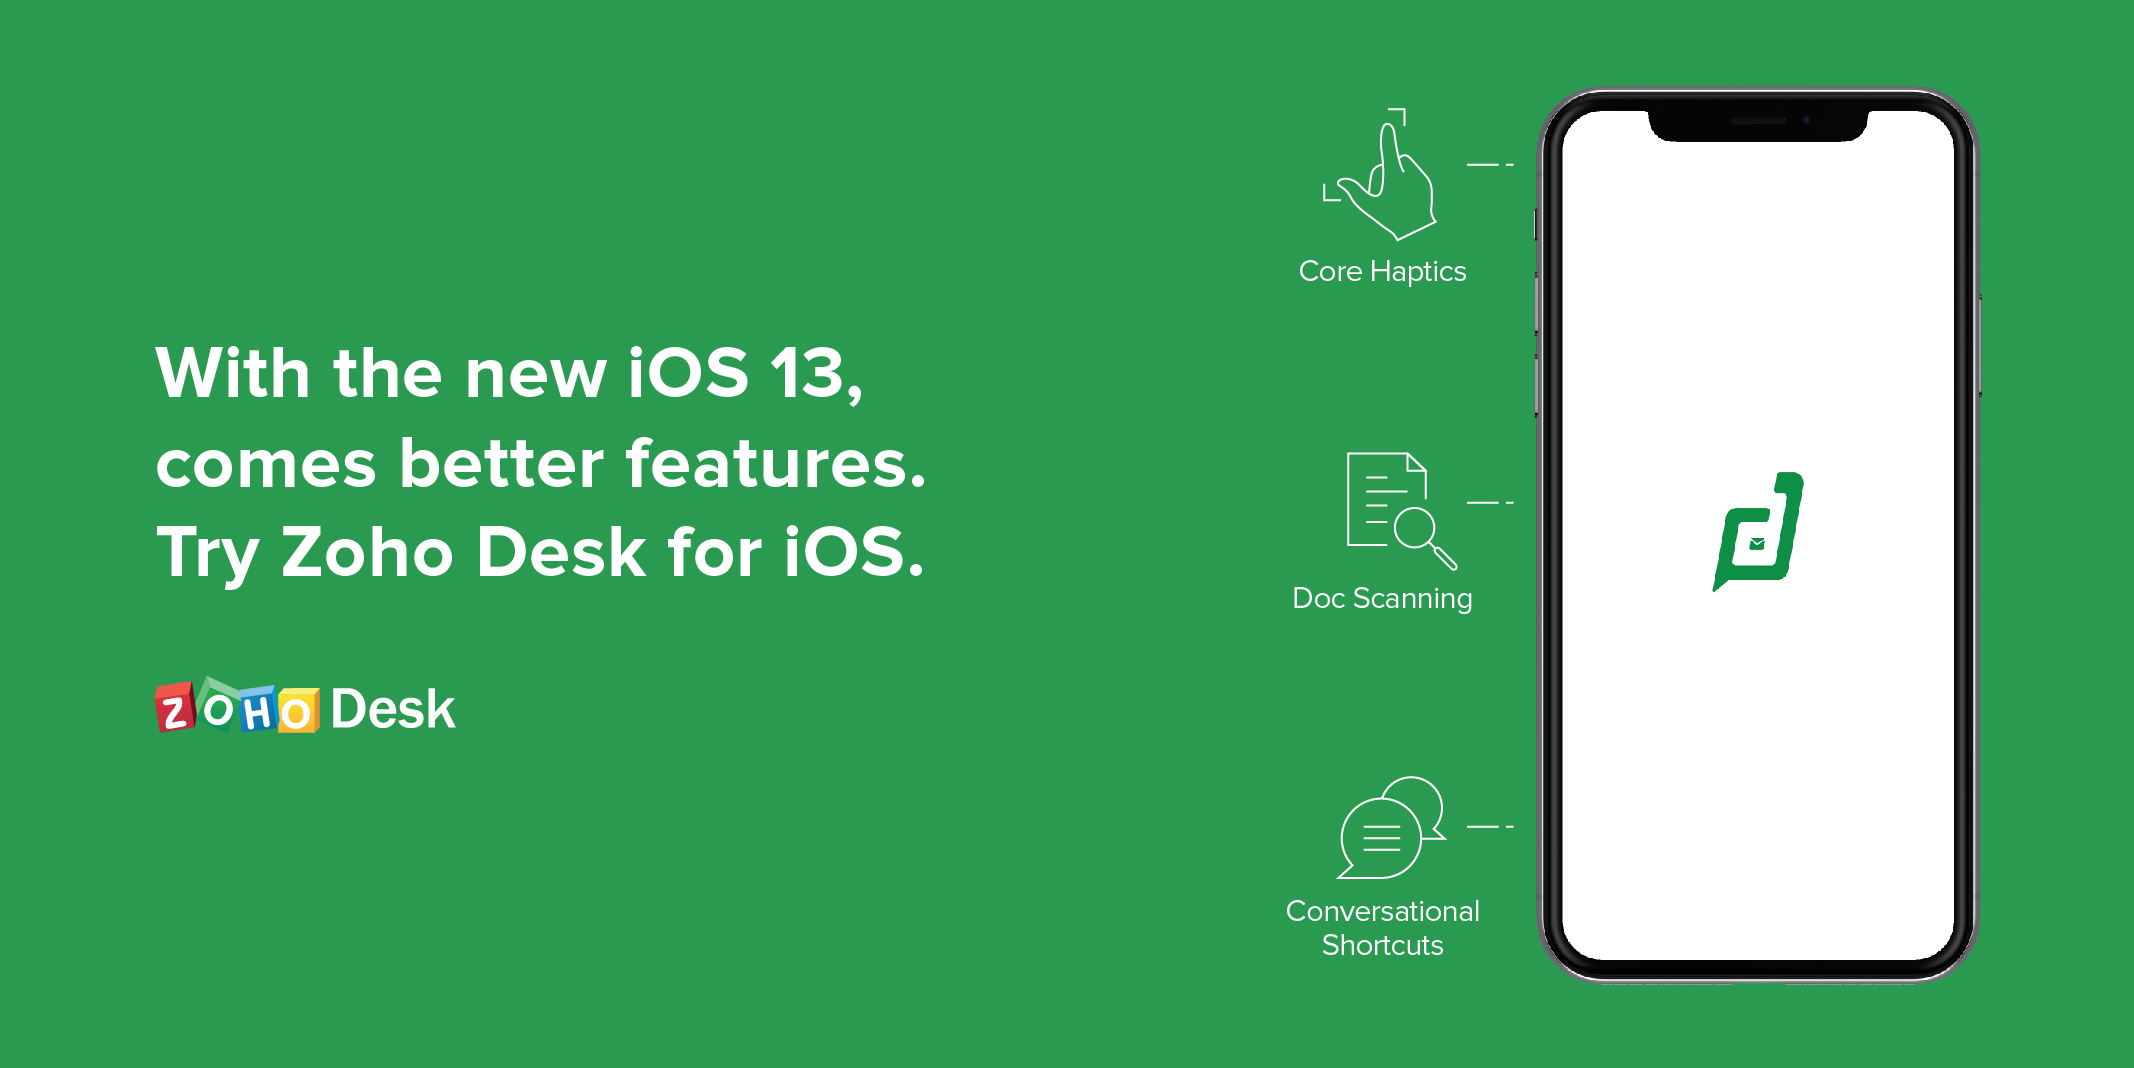 iOS 13 features for better customer experiences with Zoho Desk